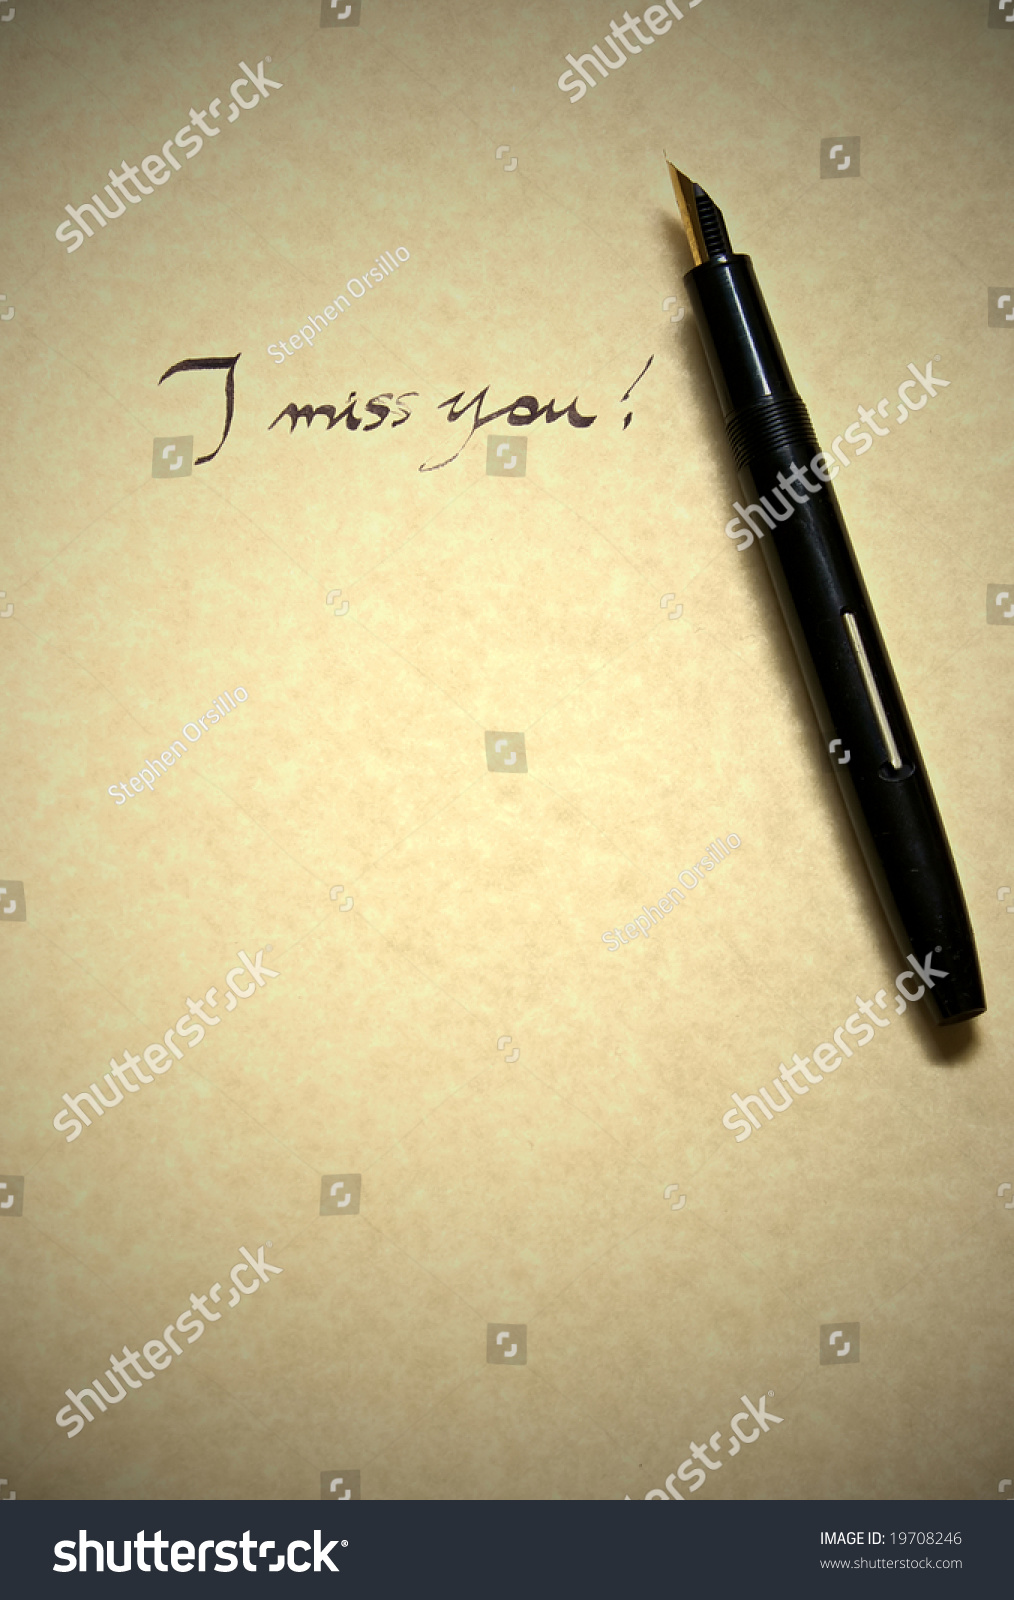 I Miss You Letter Being Written In Calligraphy On